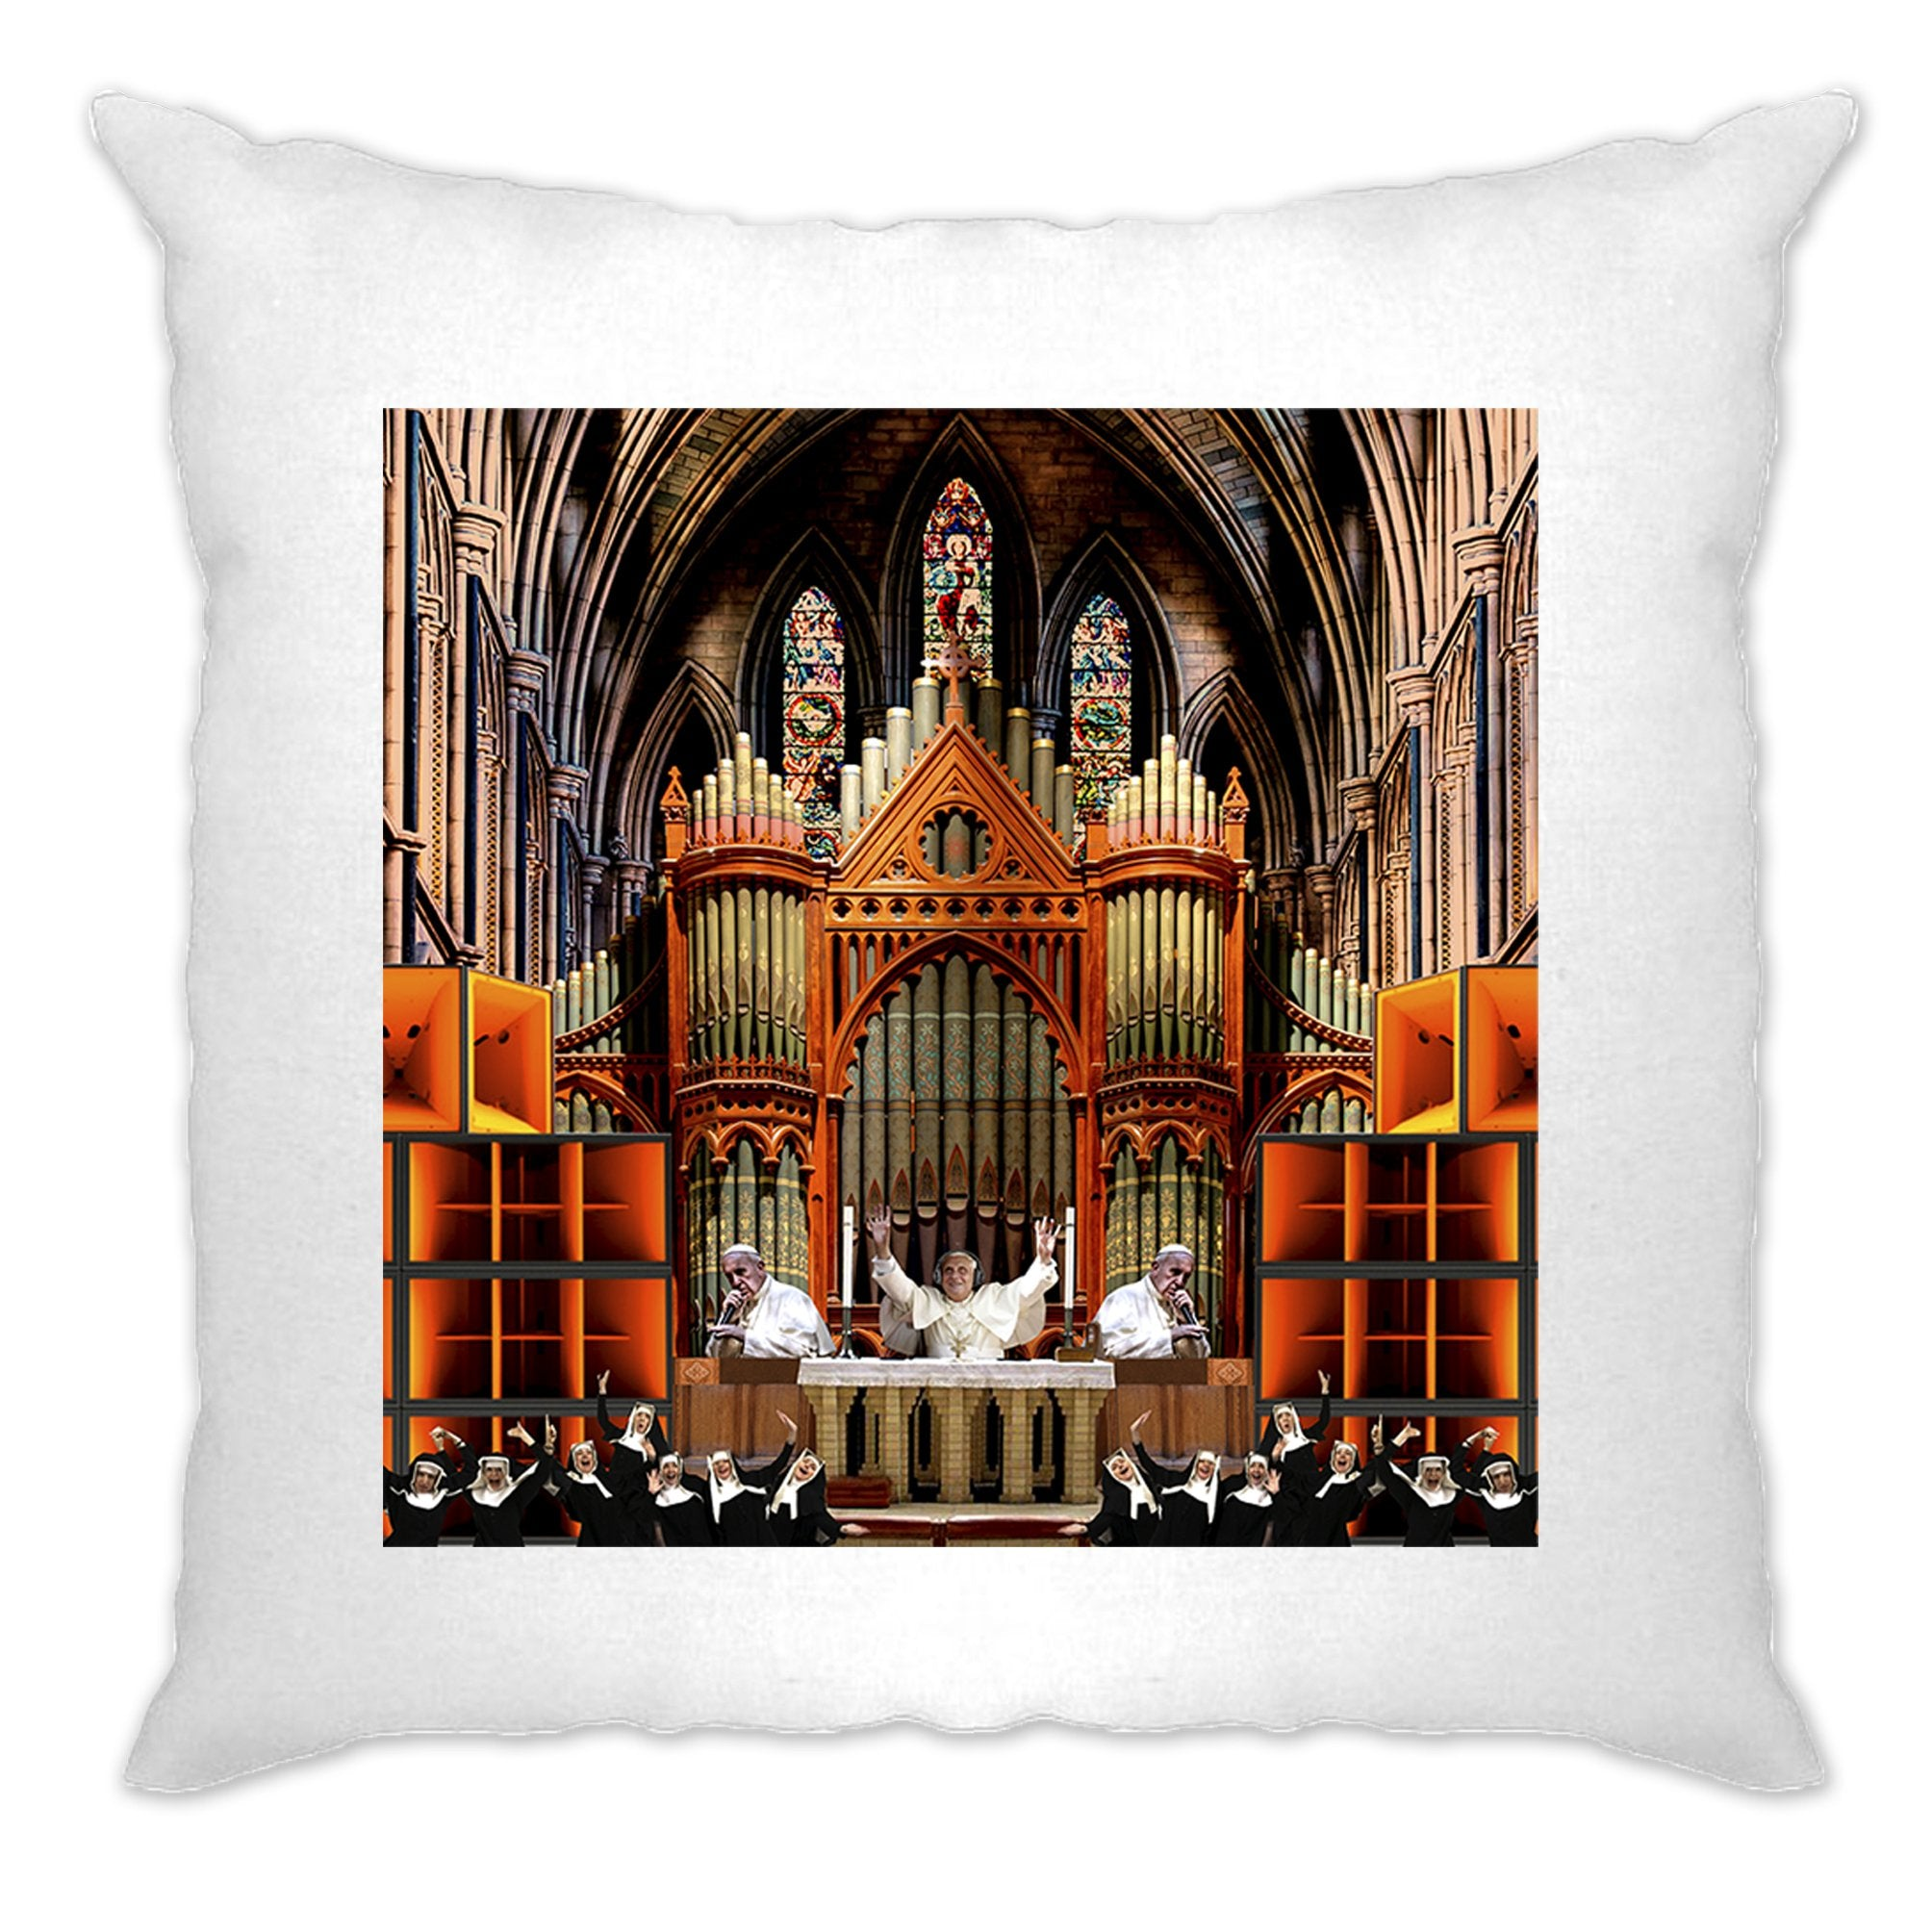 Rave Cushion Cover Nun And Bass Party Collage